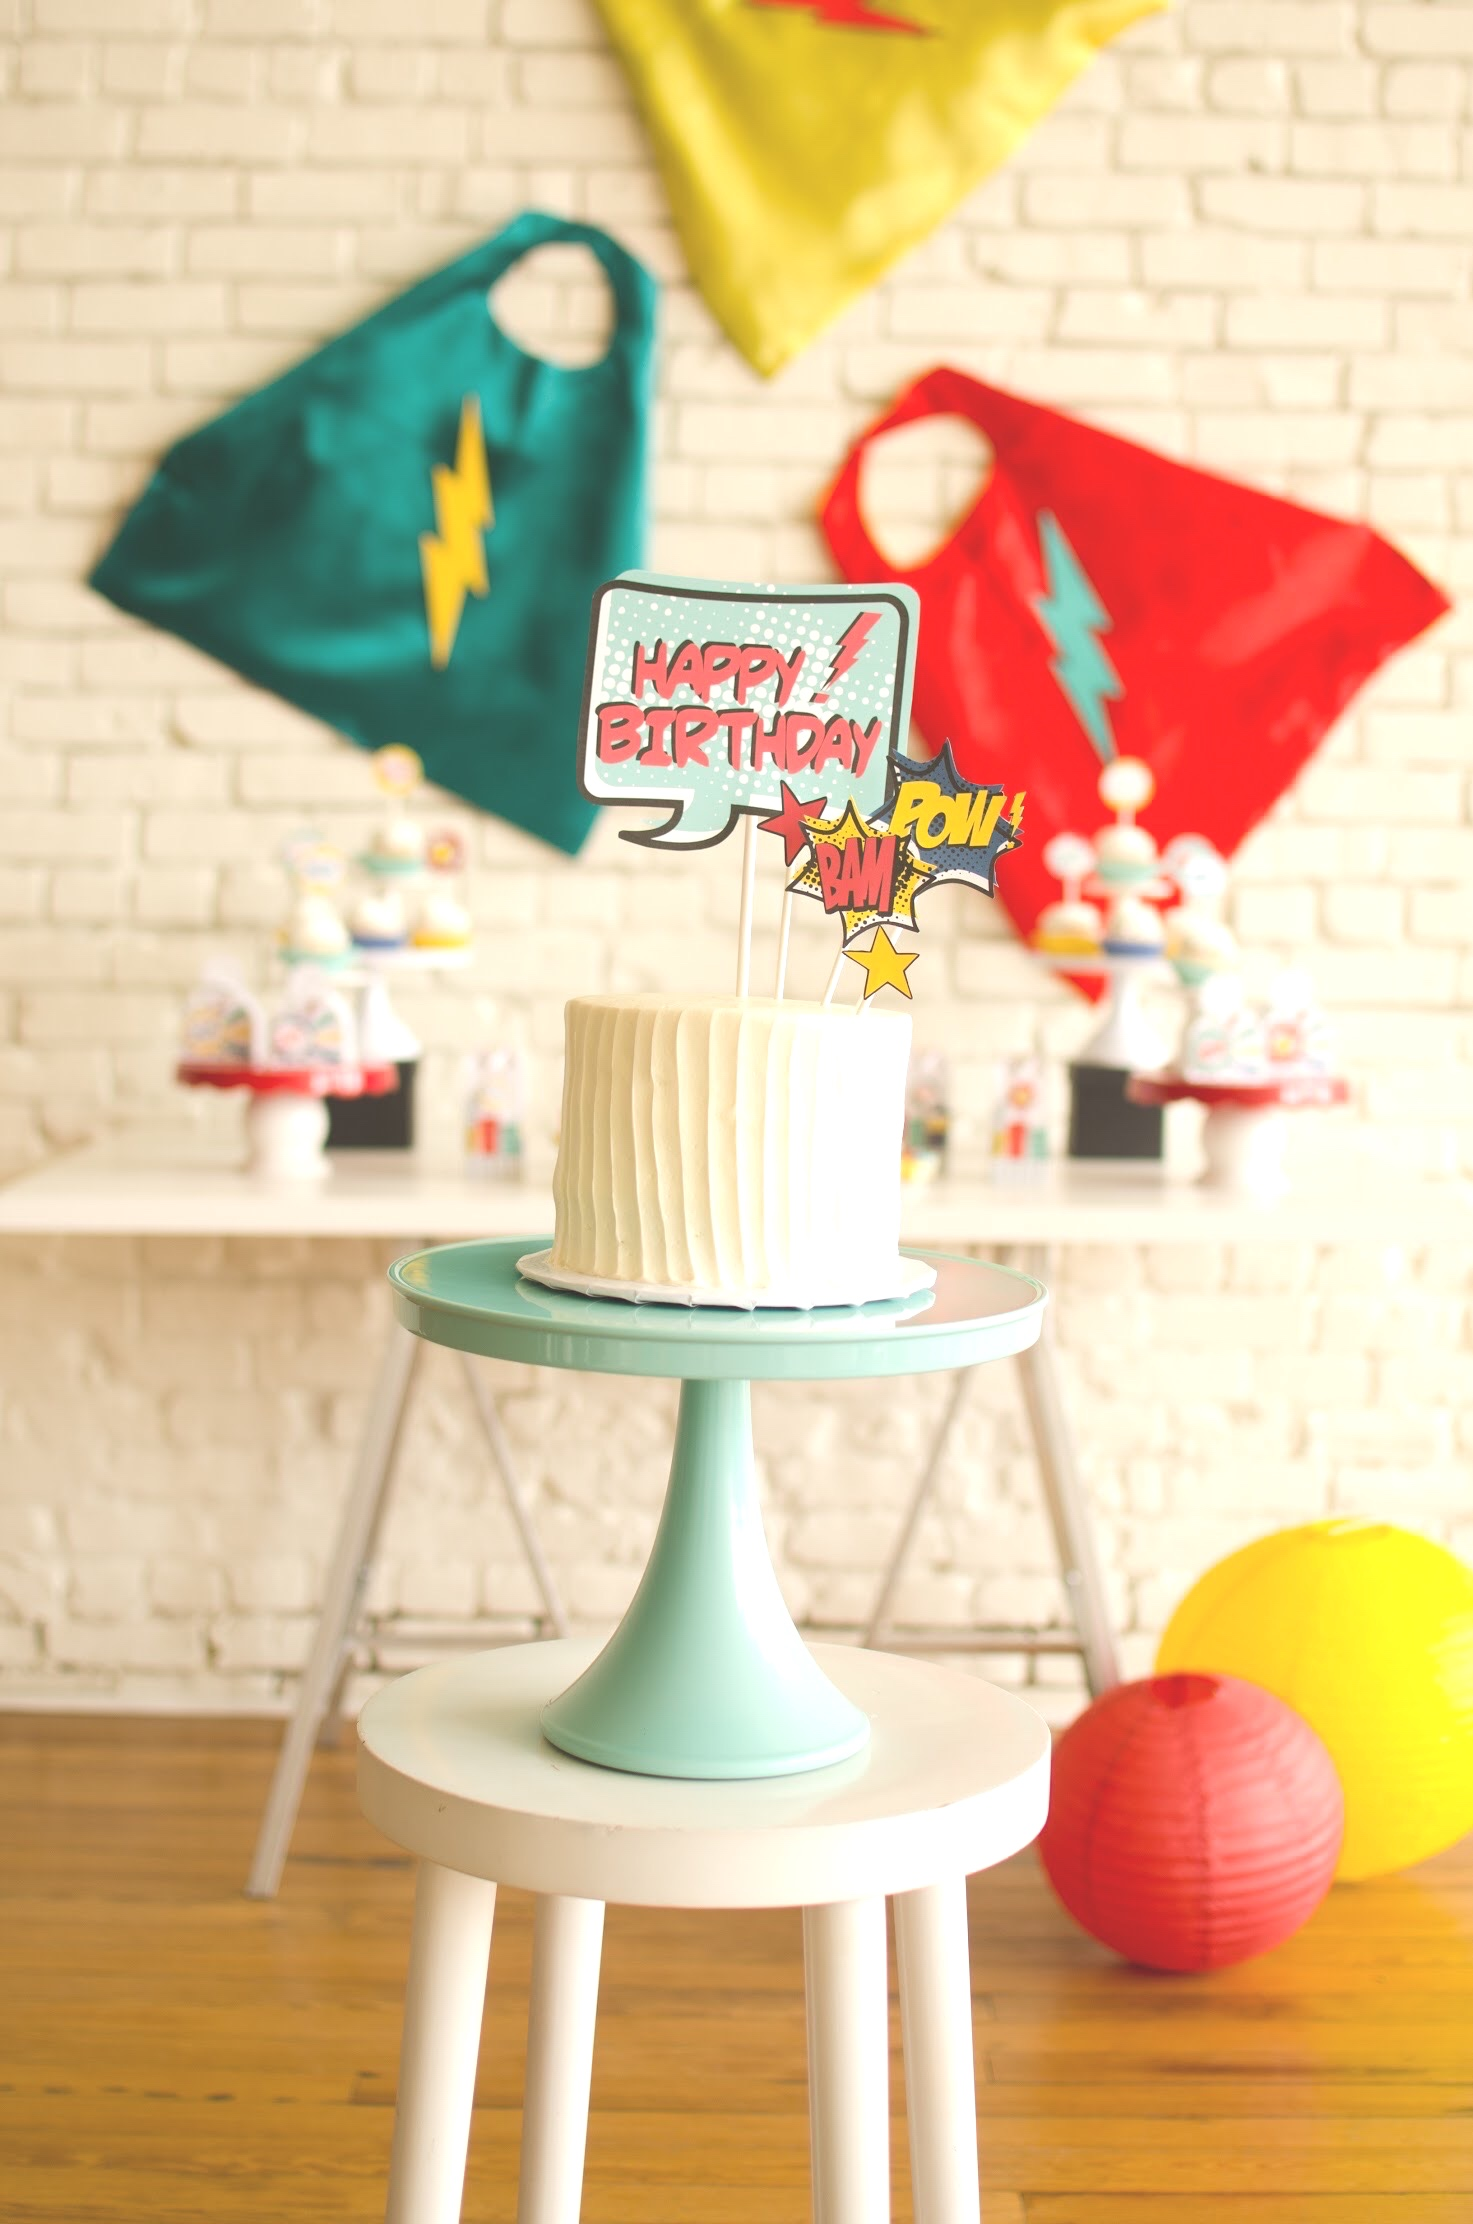 Superhero party ideas and free printables from Mint Event Design, Austin based party stylist and blogger